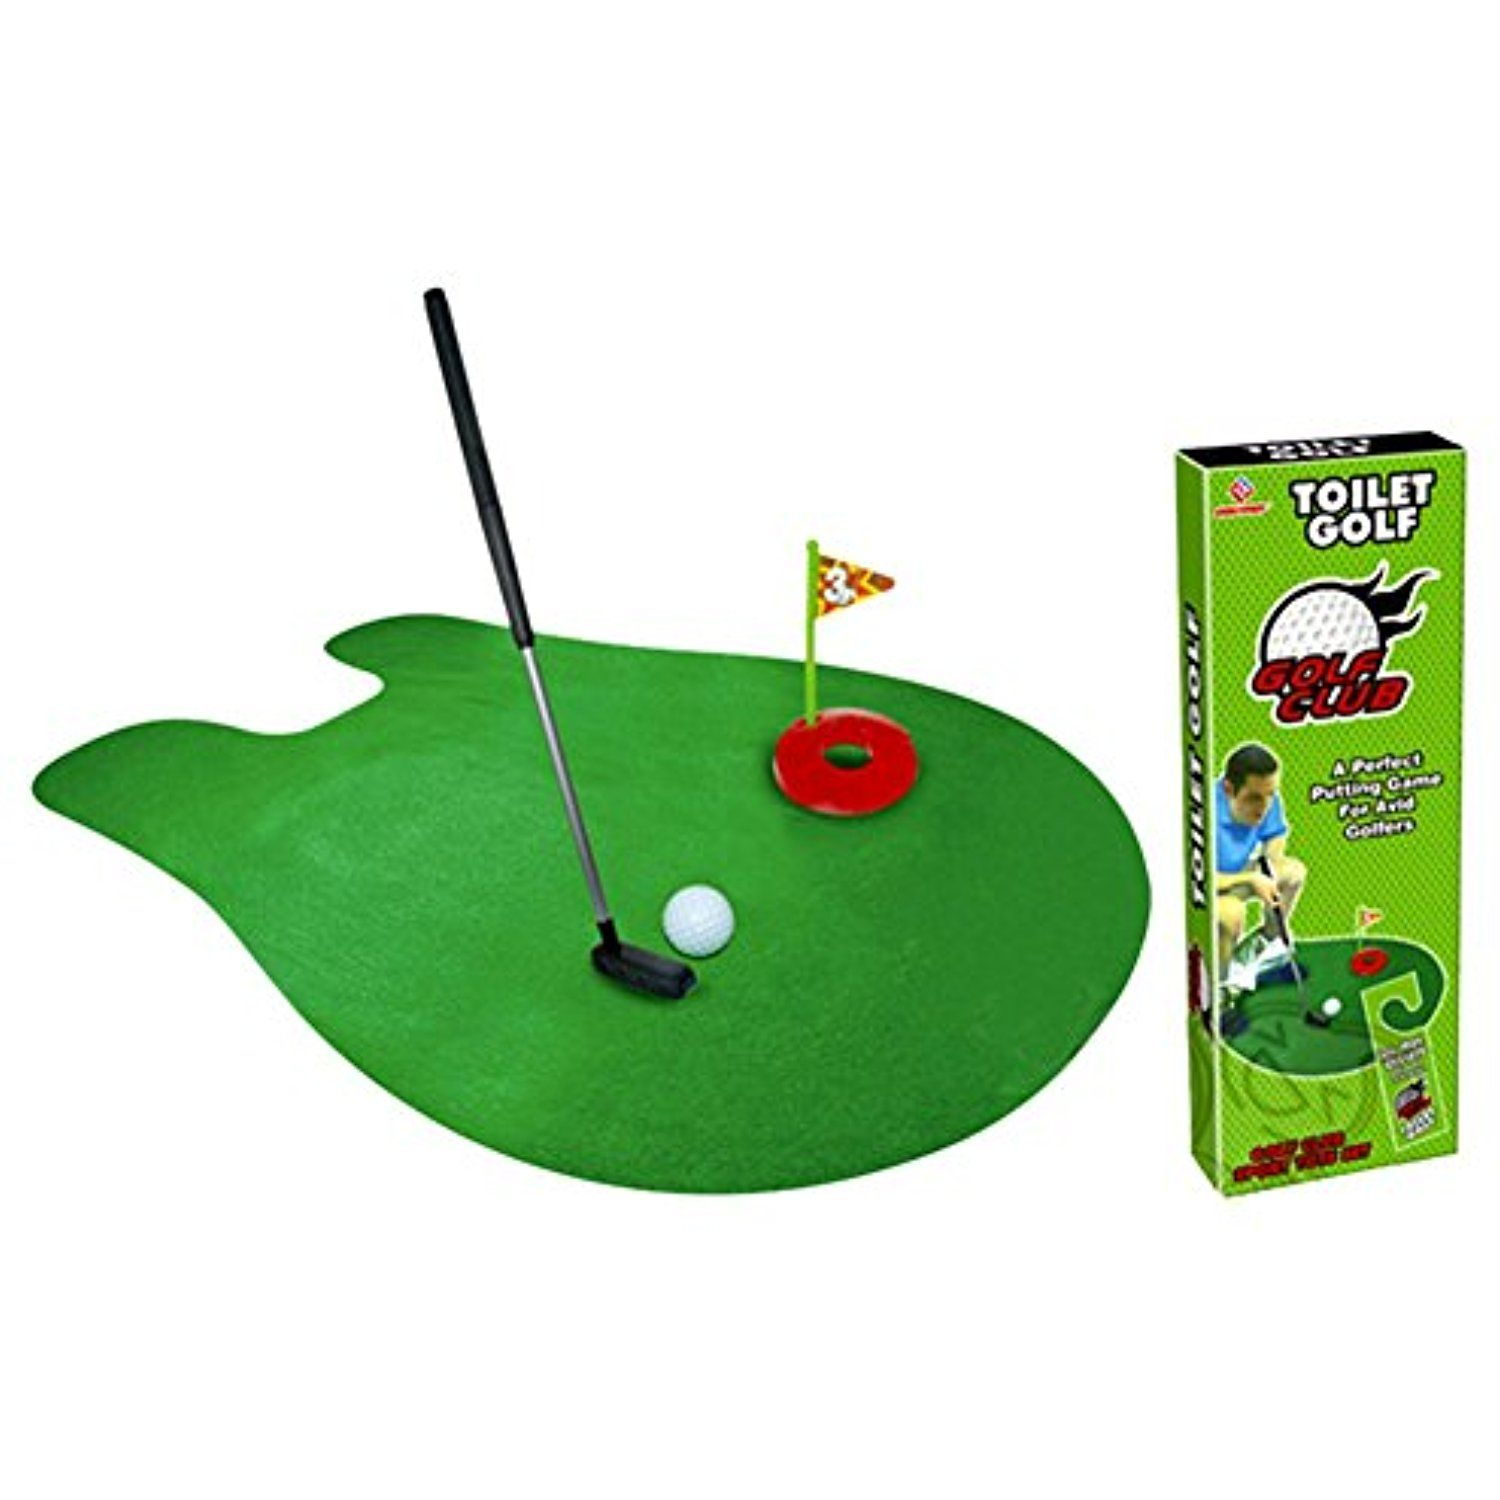 Yayoshow Toilet Golf Game Training Potty Putter Putting Mat Golf Game Click Image To Review More Details This Is A Mini Golf Set Toilet Golf Game Golf Set